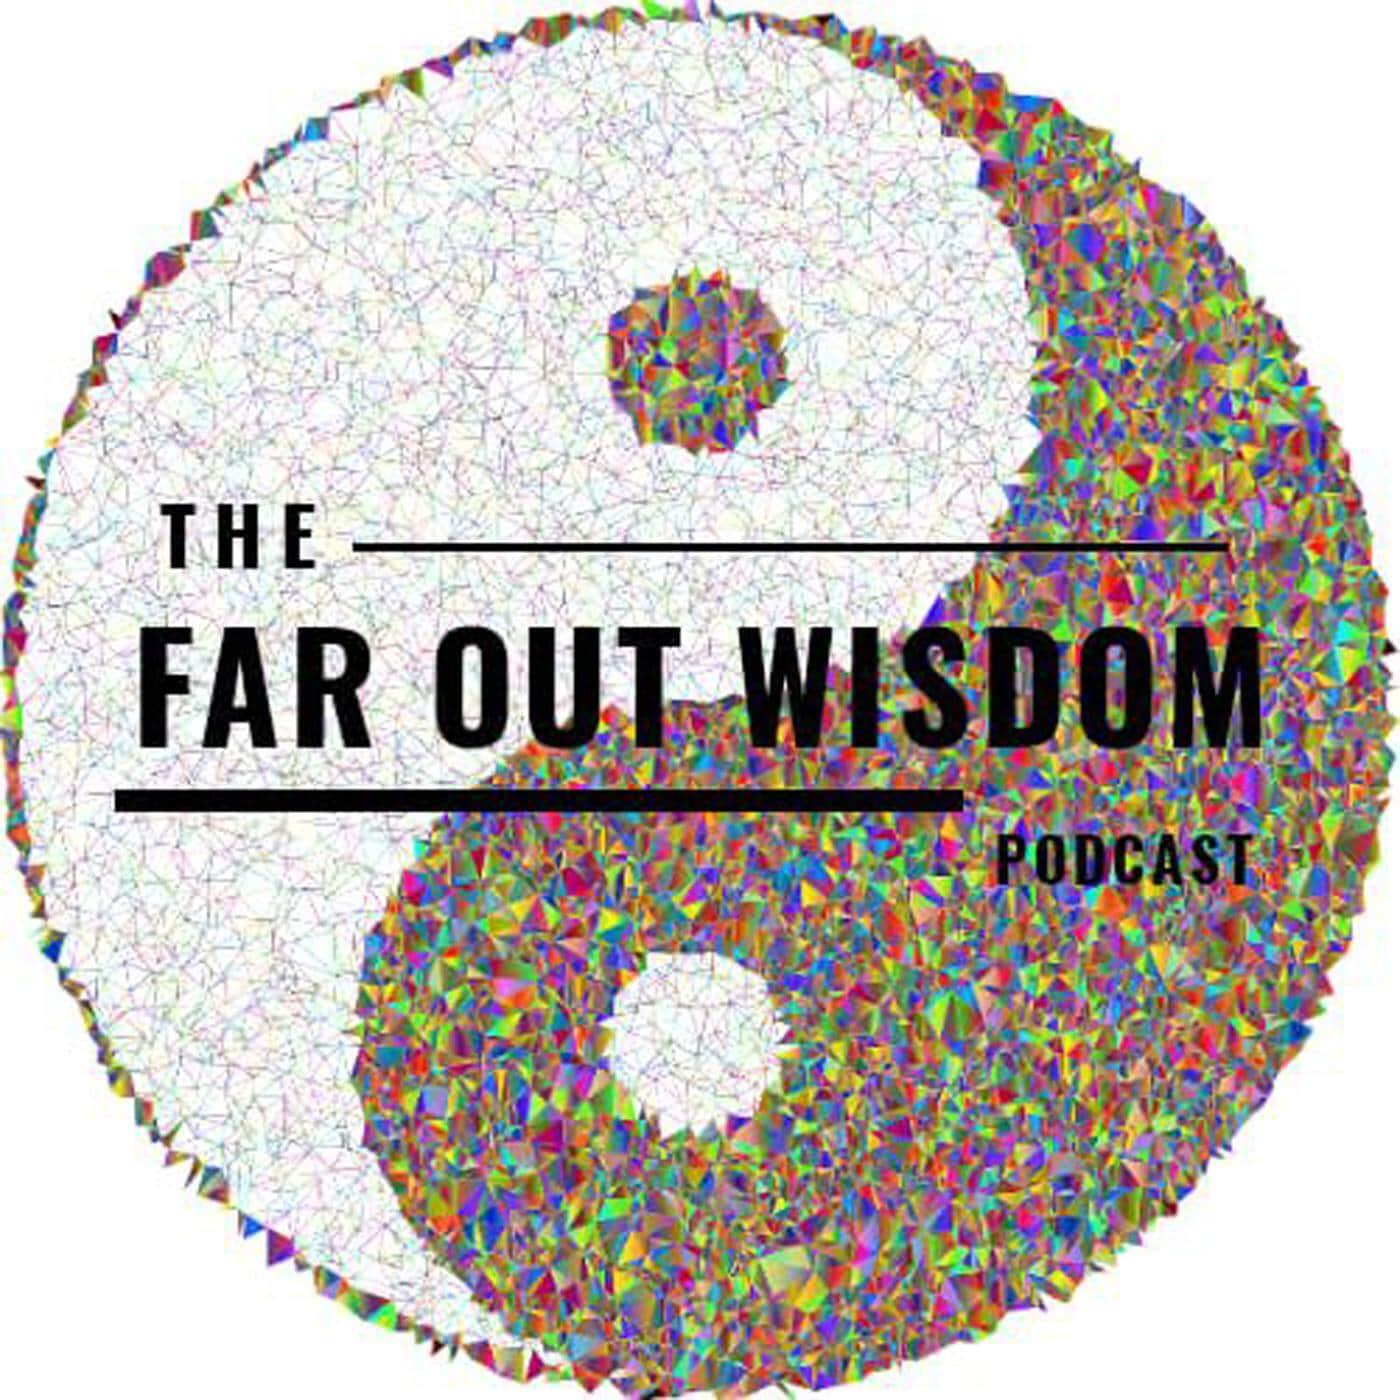 The Far Out Wisdom Podcast